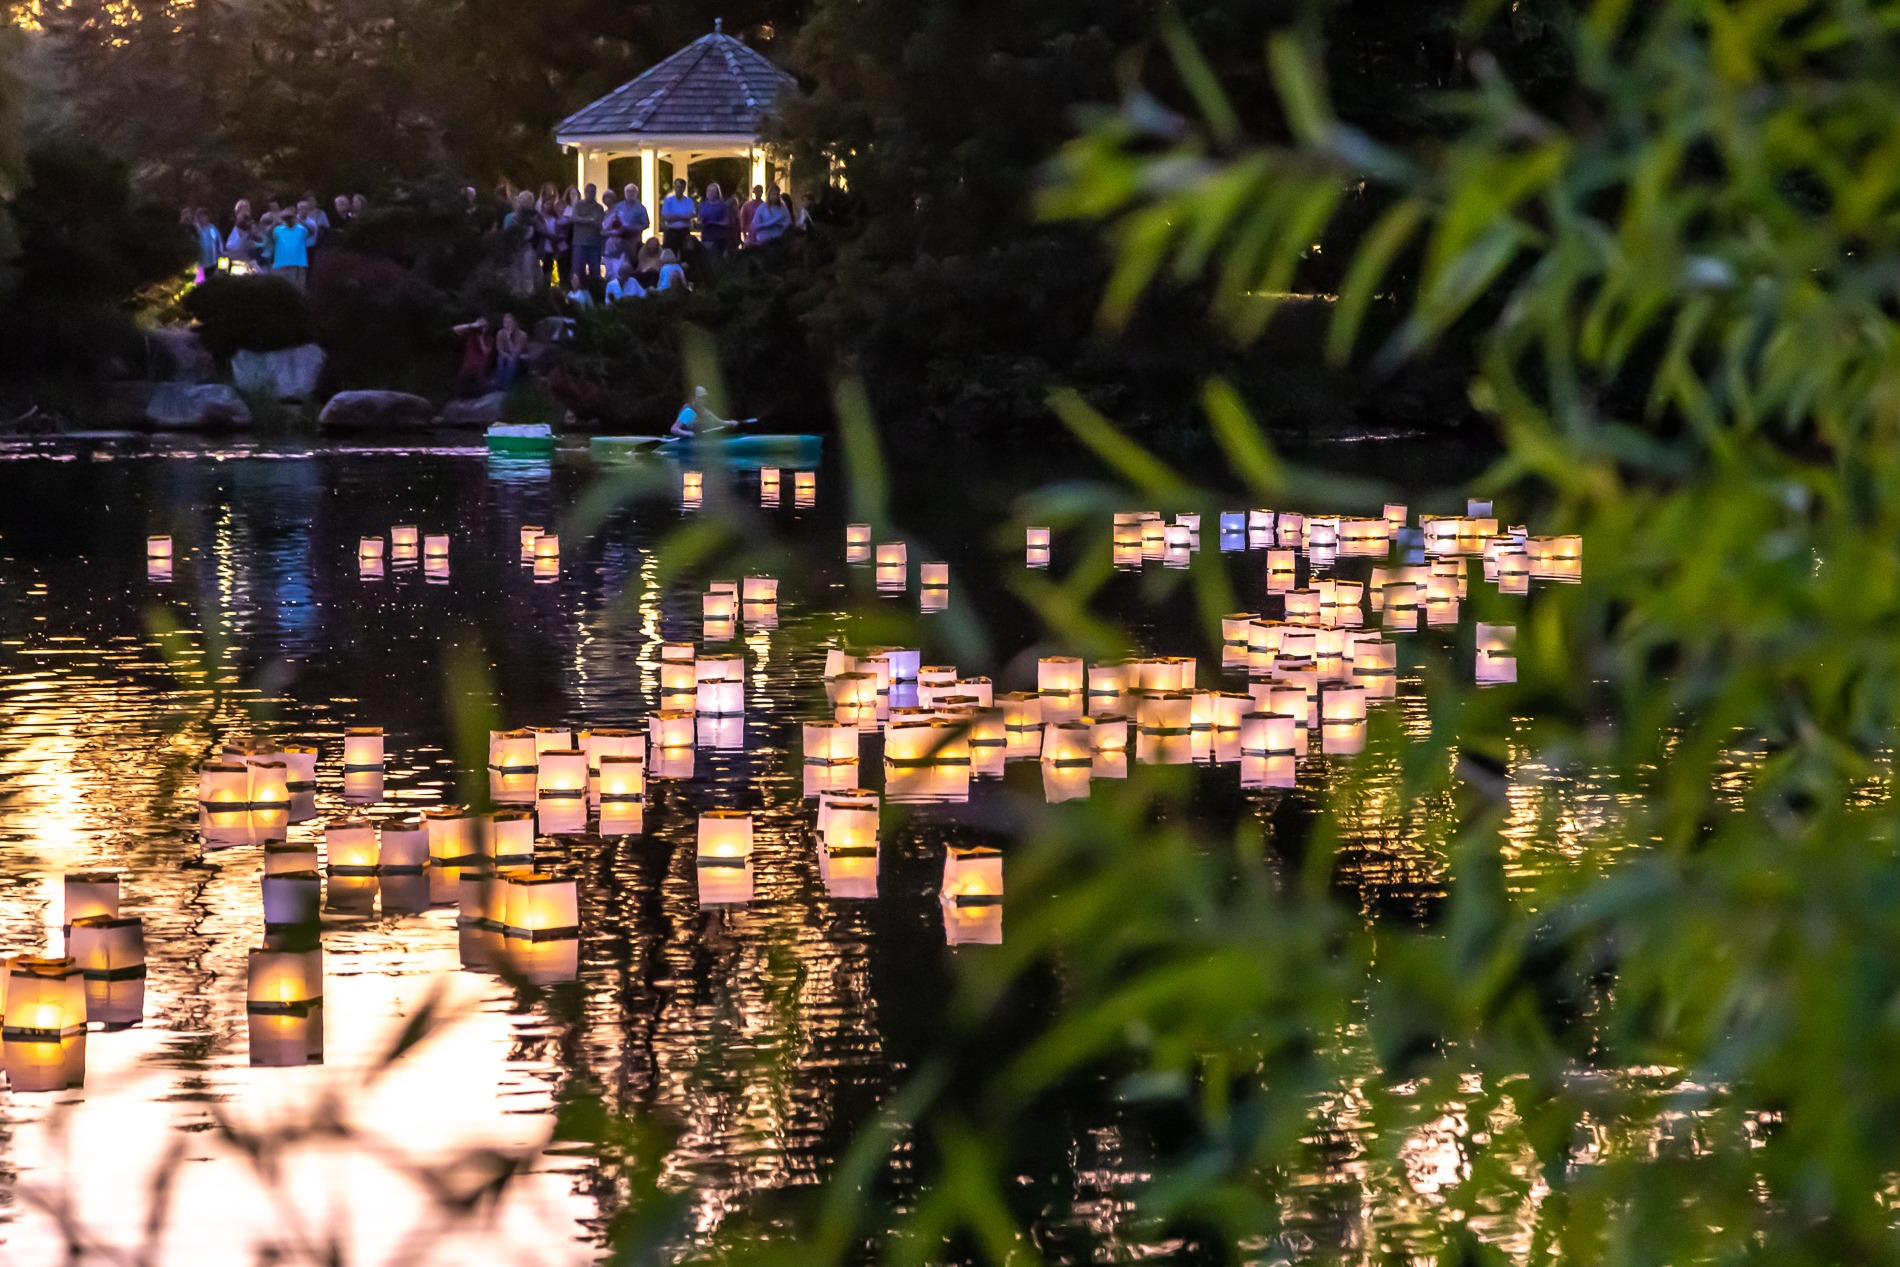 Floating lanterns at the festival showing the lake at night with votive candles. Image by Tom Hennessy